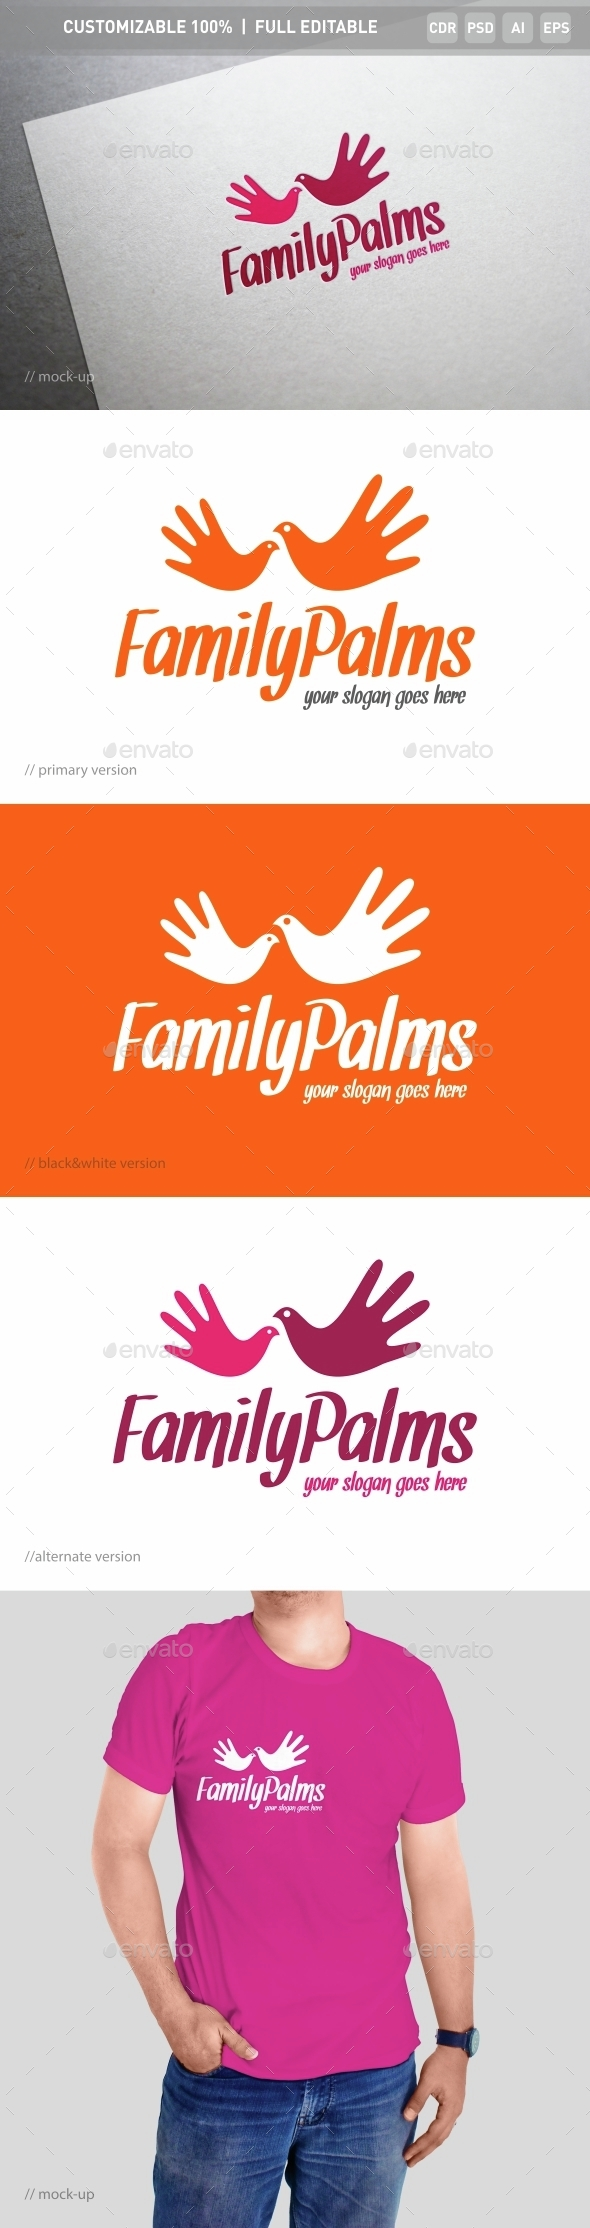 Family Palms Logo Template - Objects Logo Templates